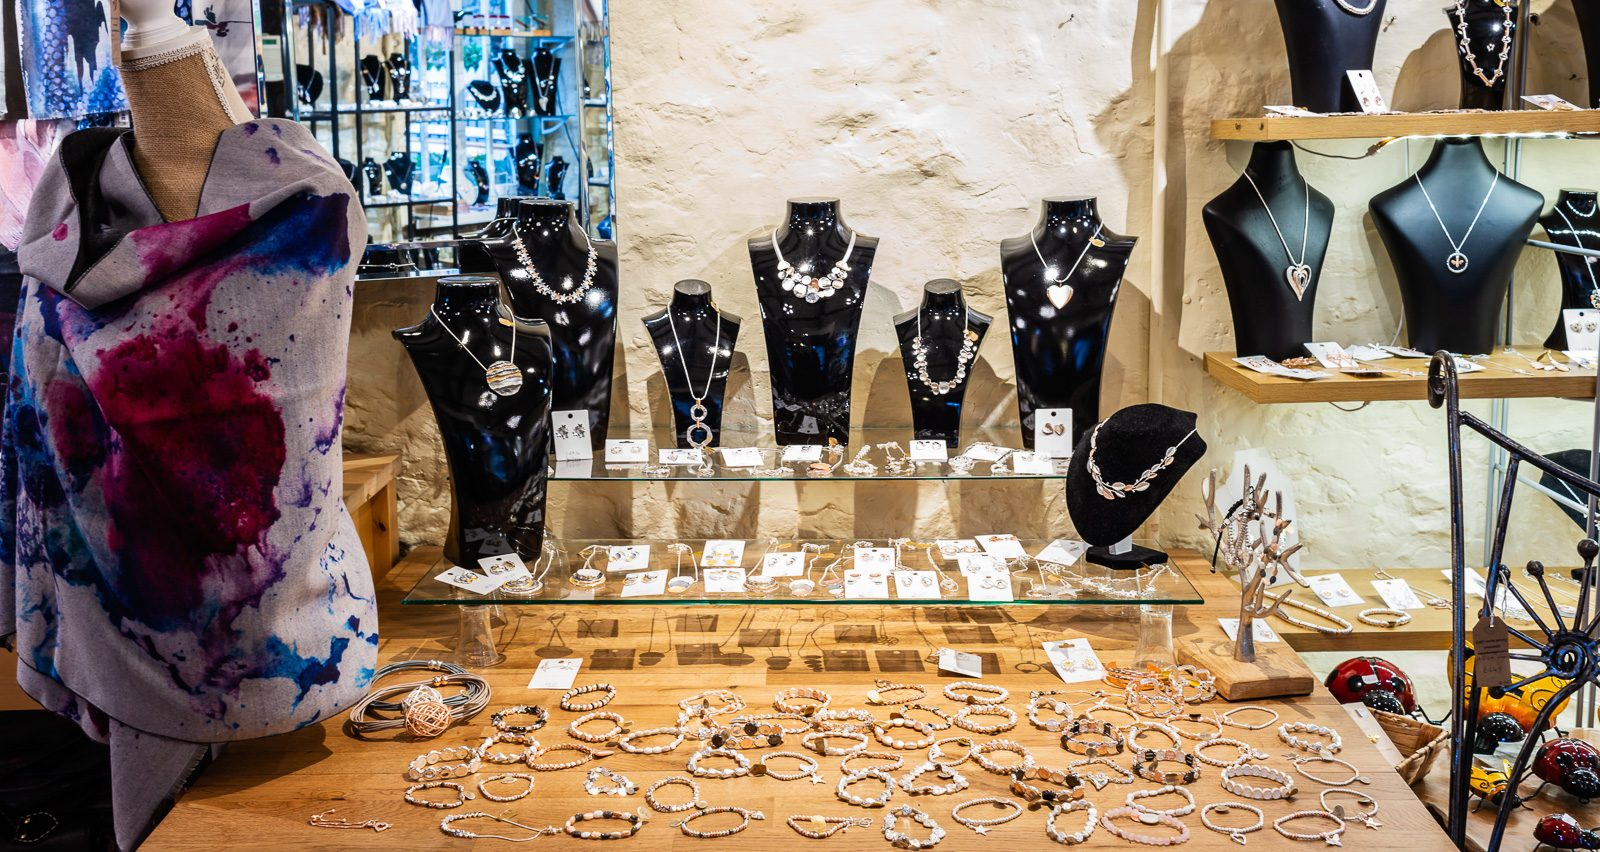 Jewellery | Craftworks Gallery in Corbridge, Northumberland.